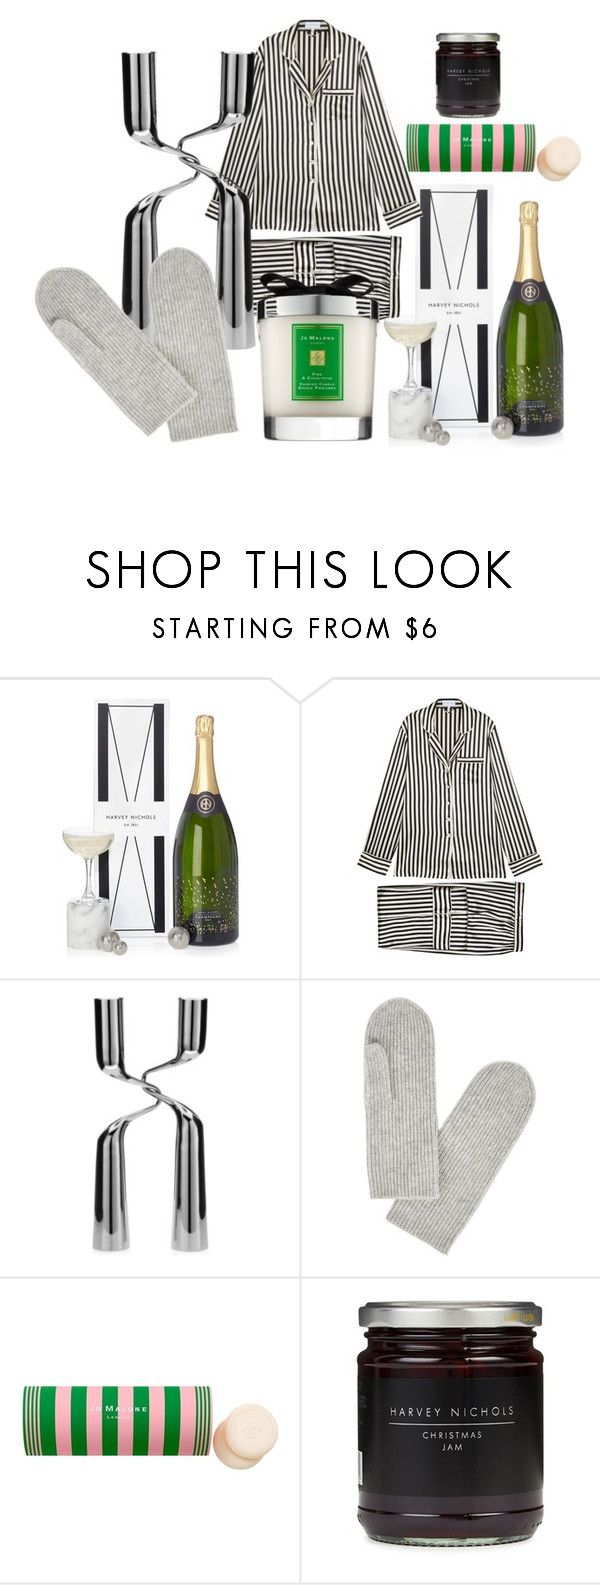 """Christmas Gift Ideas at Harvey Nichols"" by harveynichols ❤ liked on Polyvore featuring Olivia von Halle, Menu, Isabel Marant and Jo Malone"